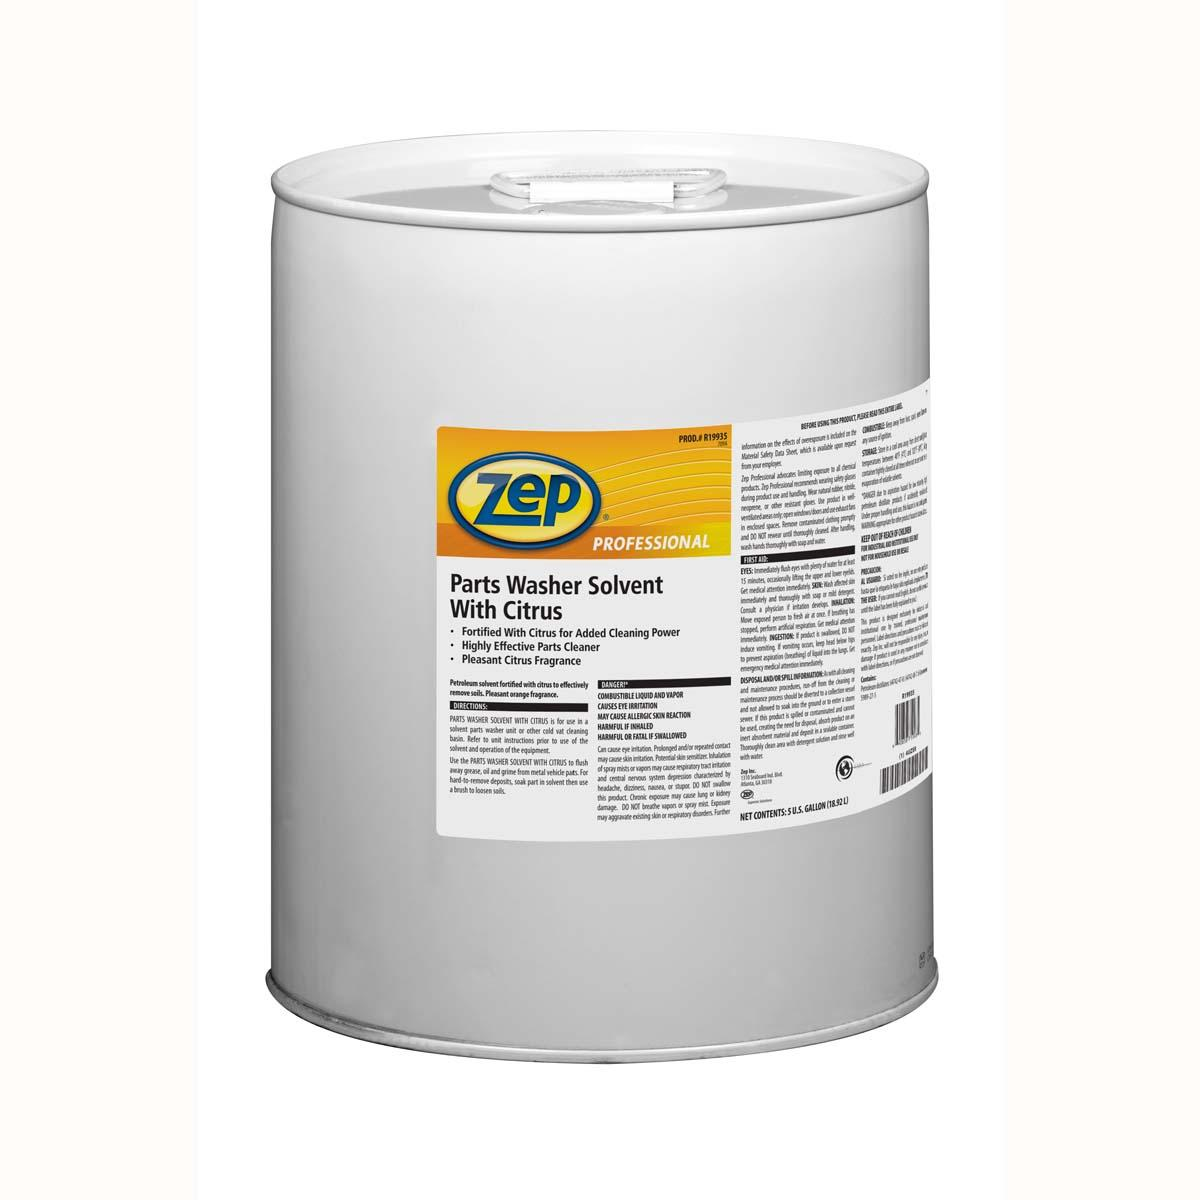 ZEP Parts-Washer-Solvent-With-Citrus